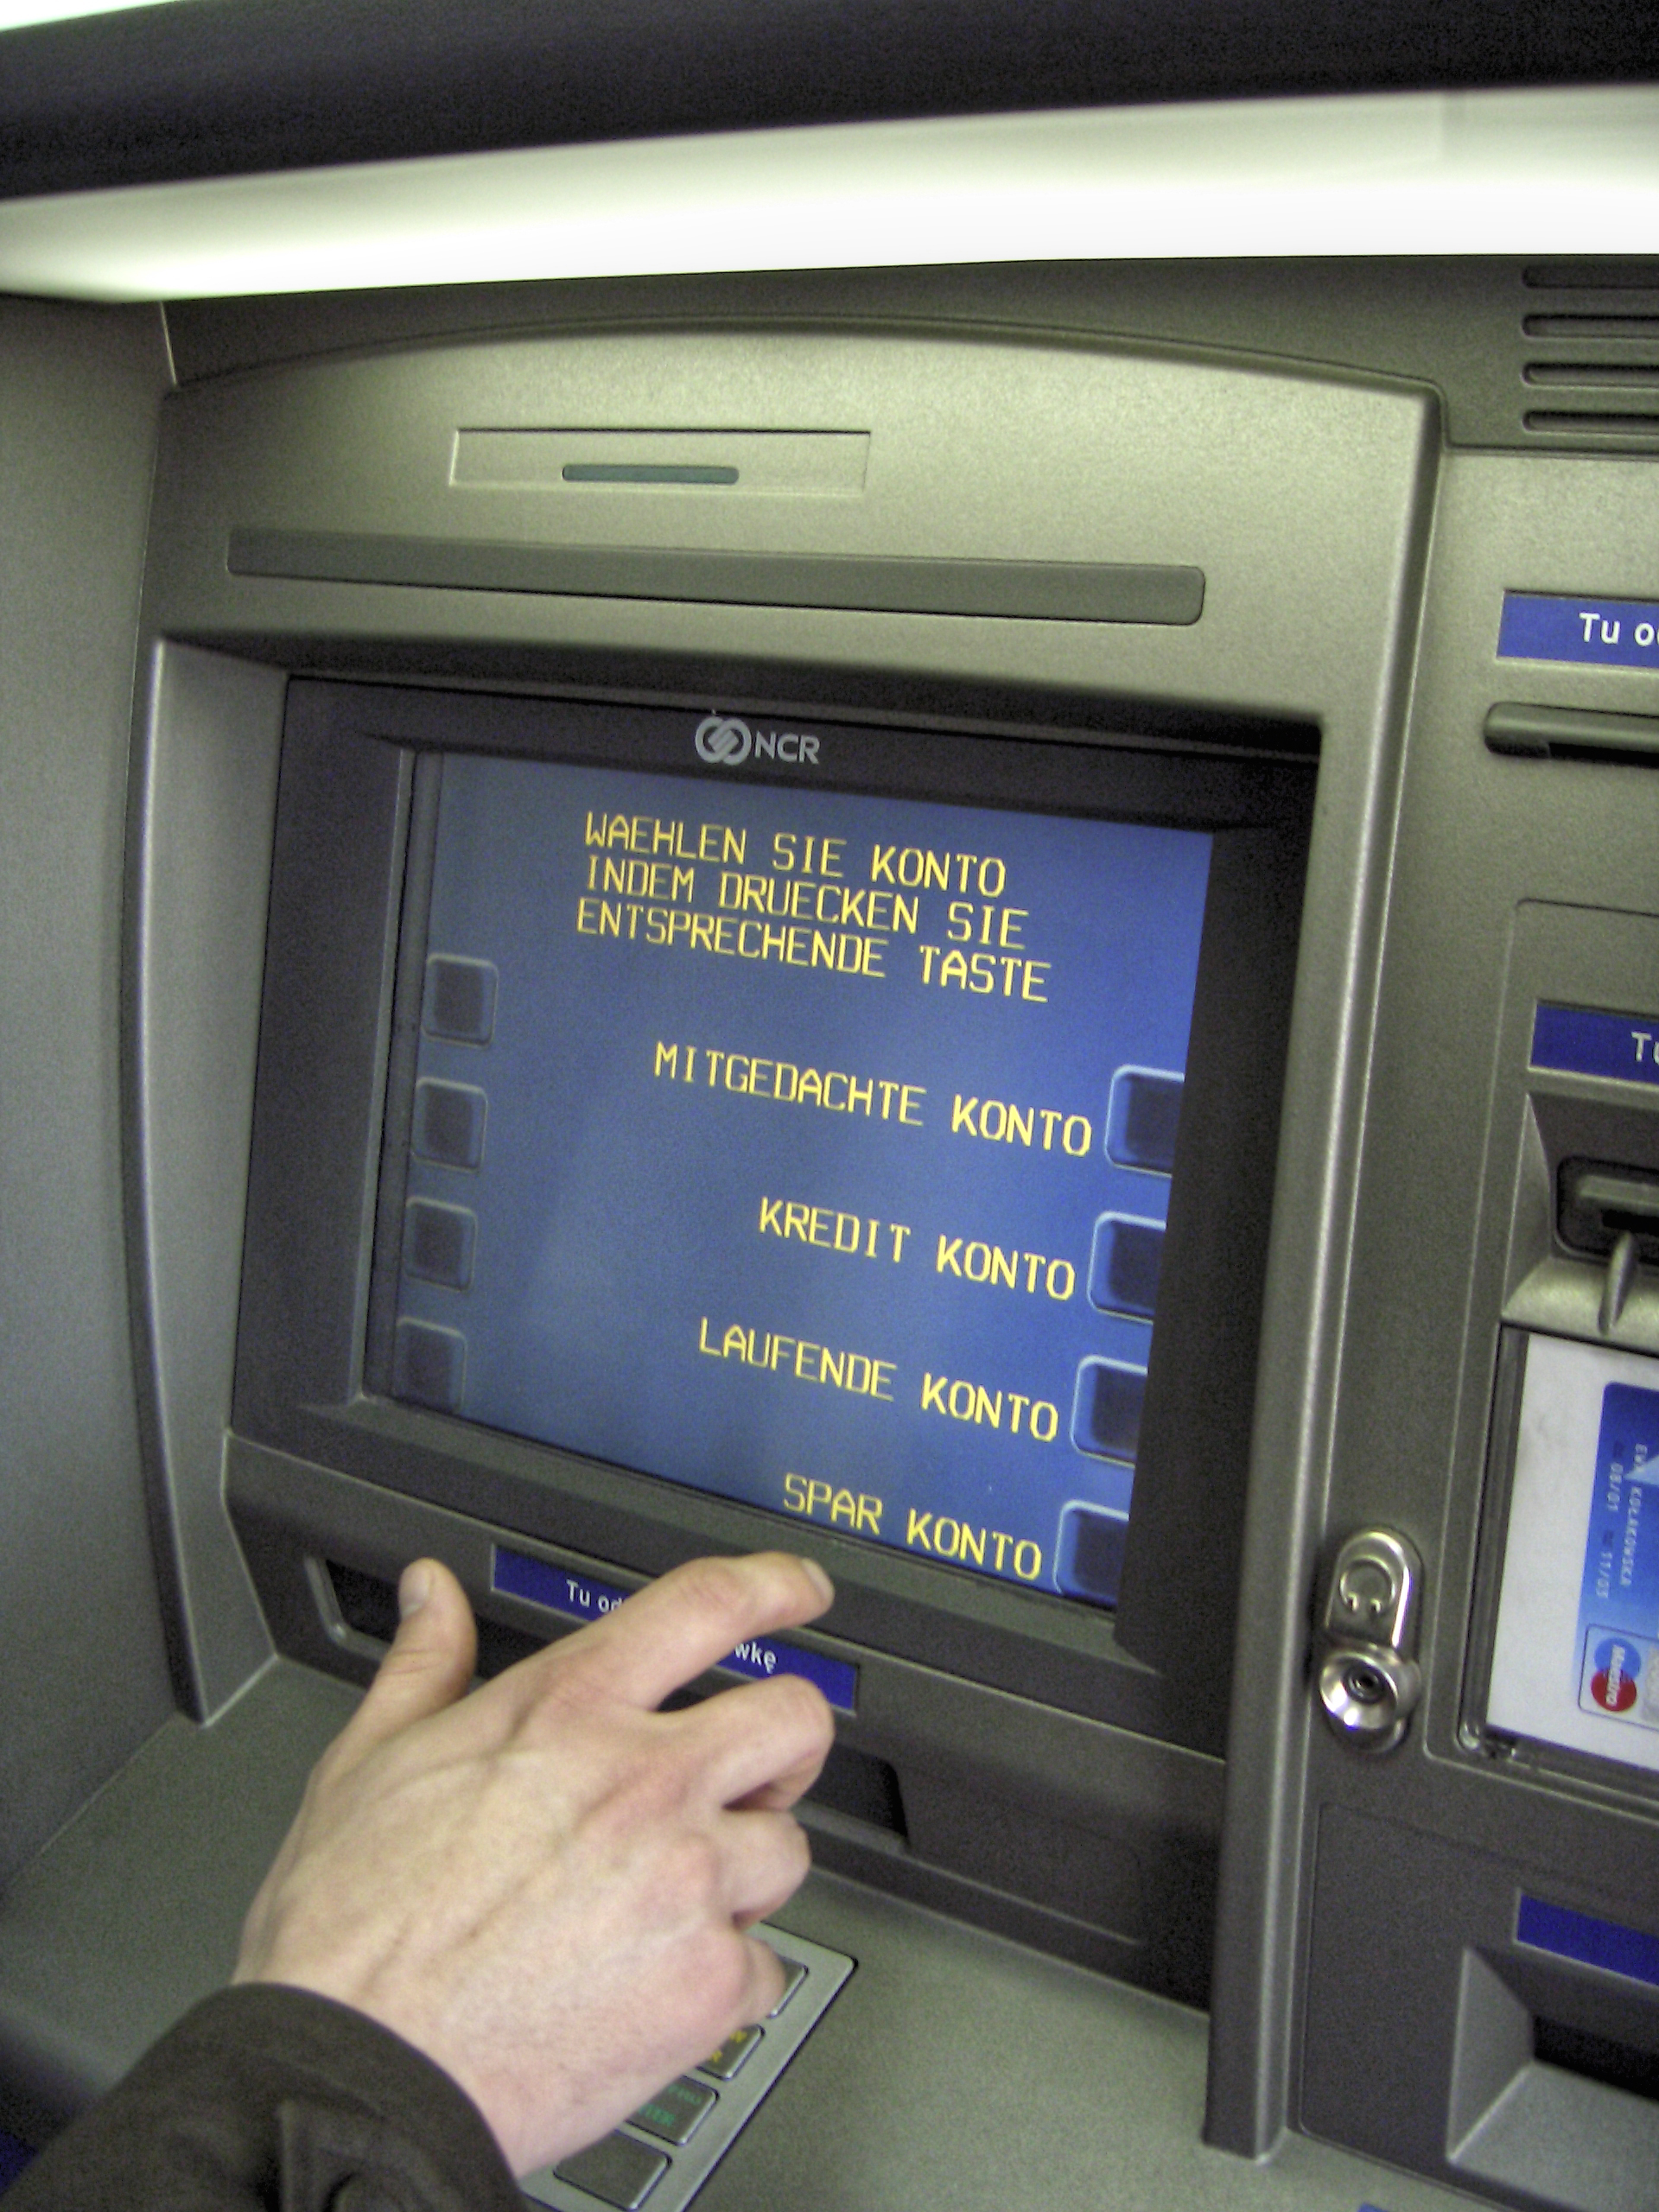 File:NCR ATM.JPG - Wikimedia Commons